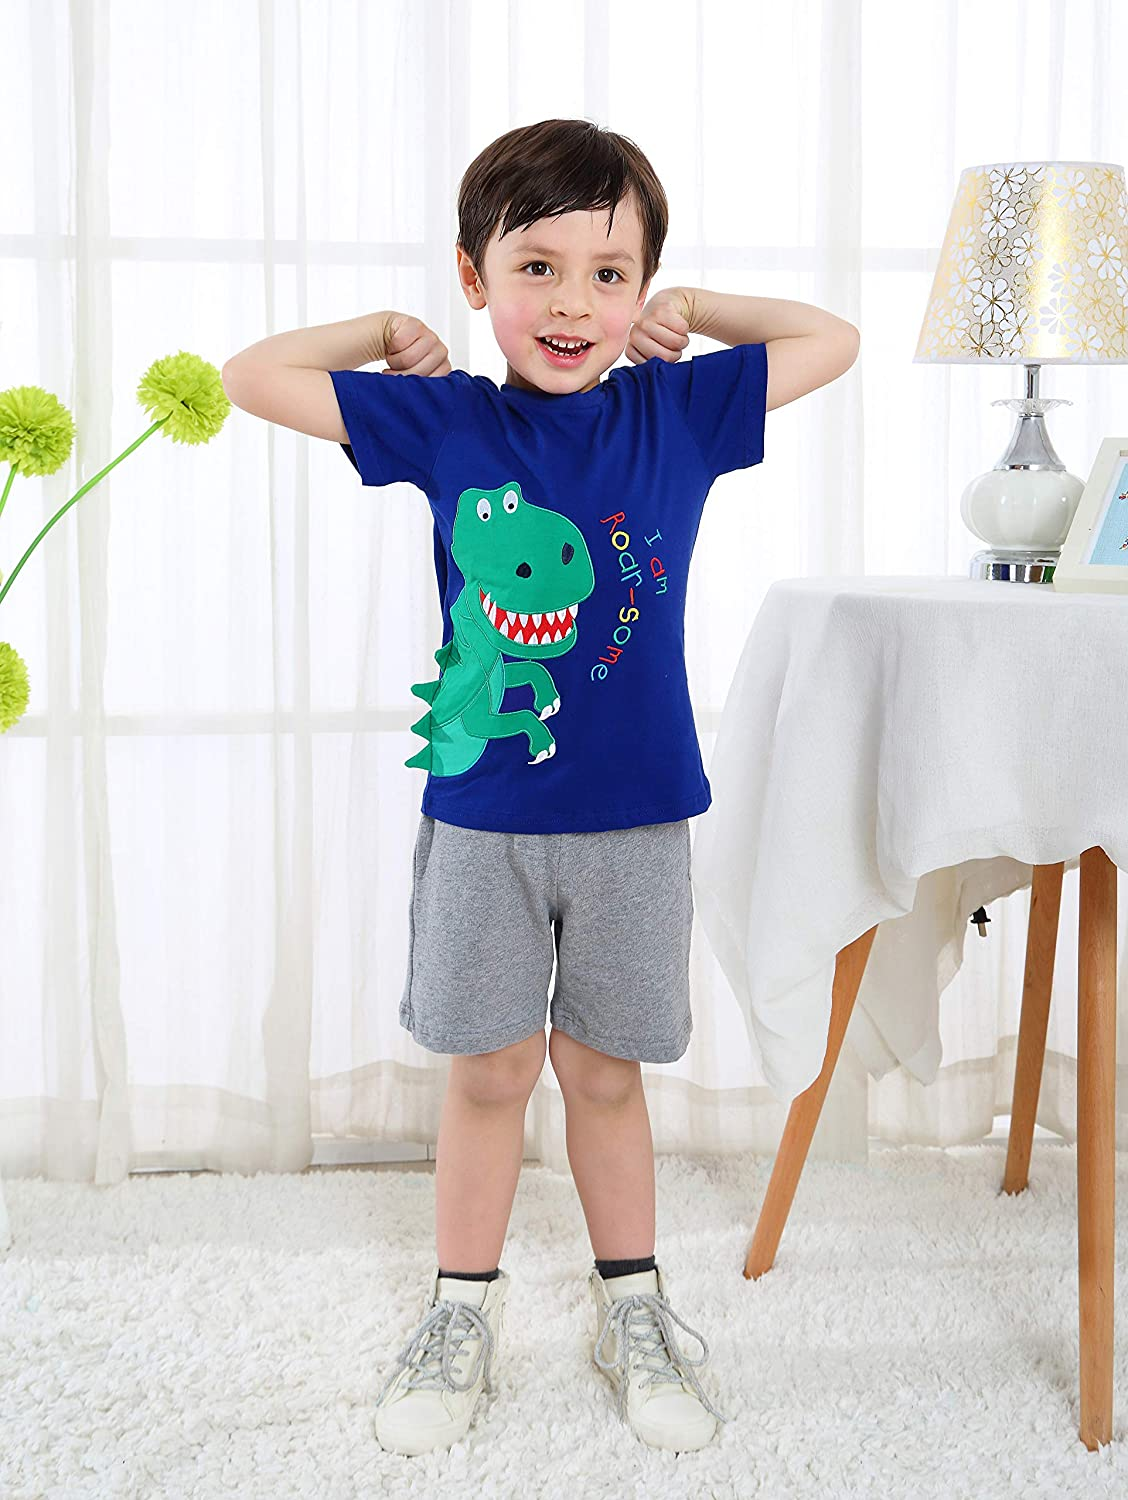 Fiream Boys Cotton Clothing Sets T-Shirt/&Shorts 2 Packs TZset087